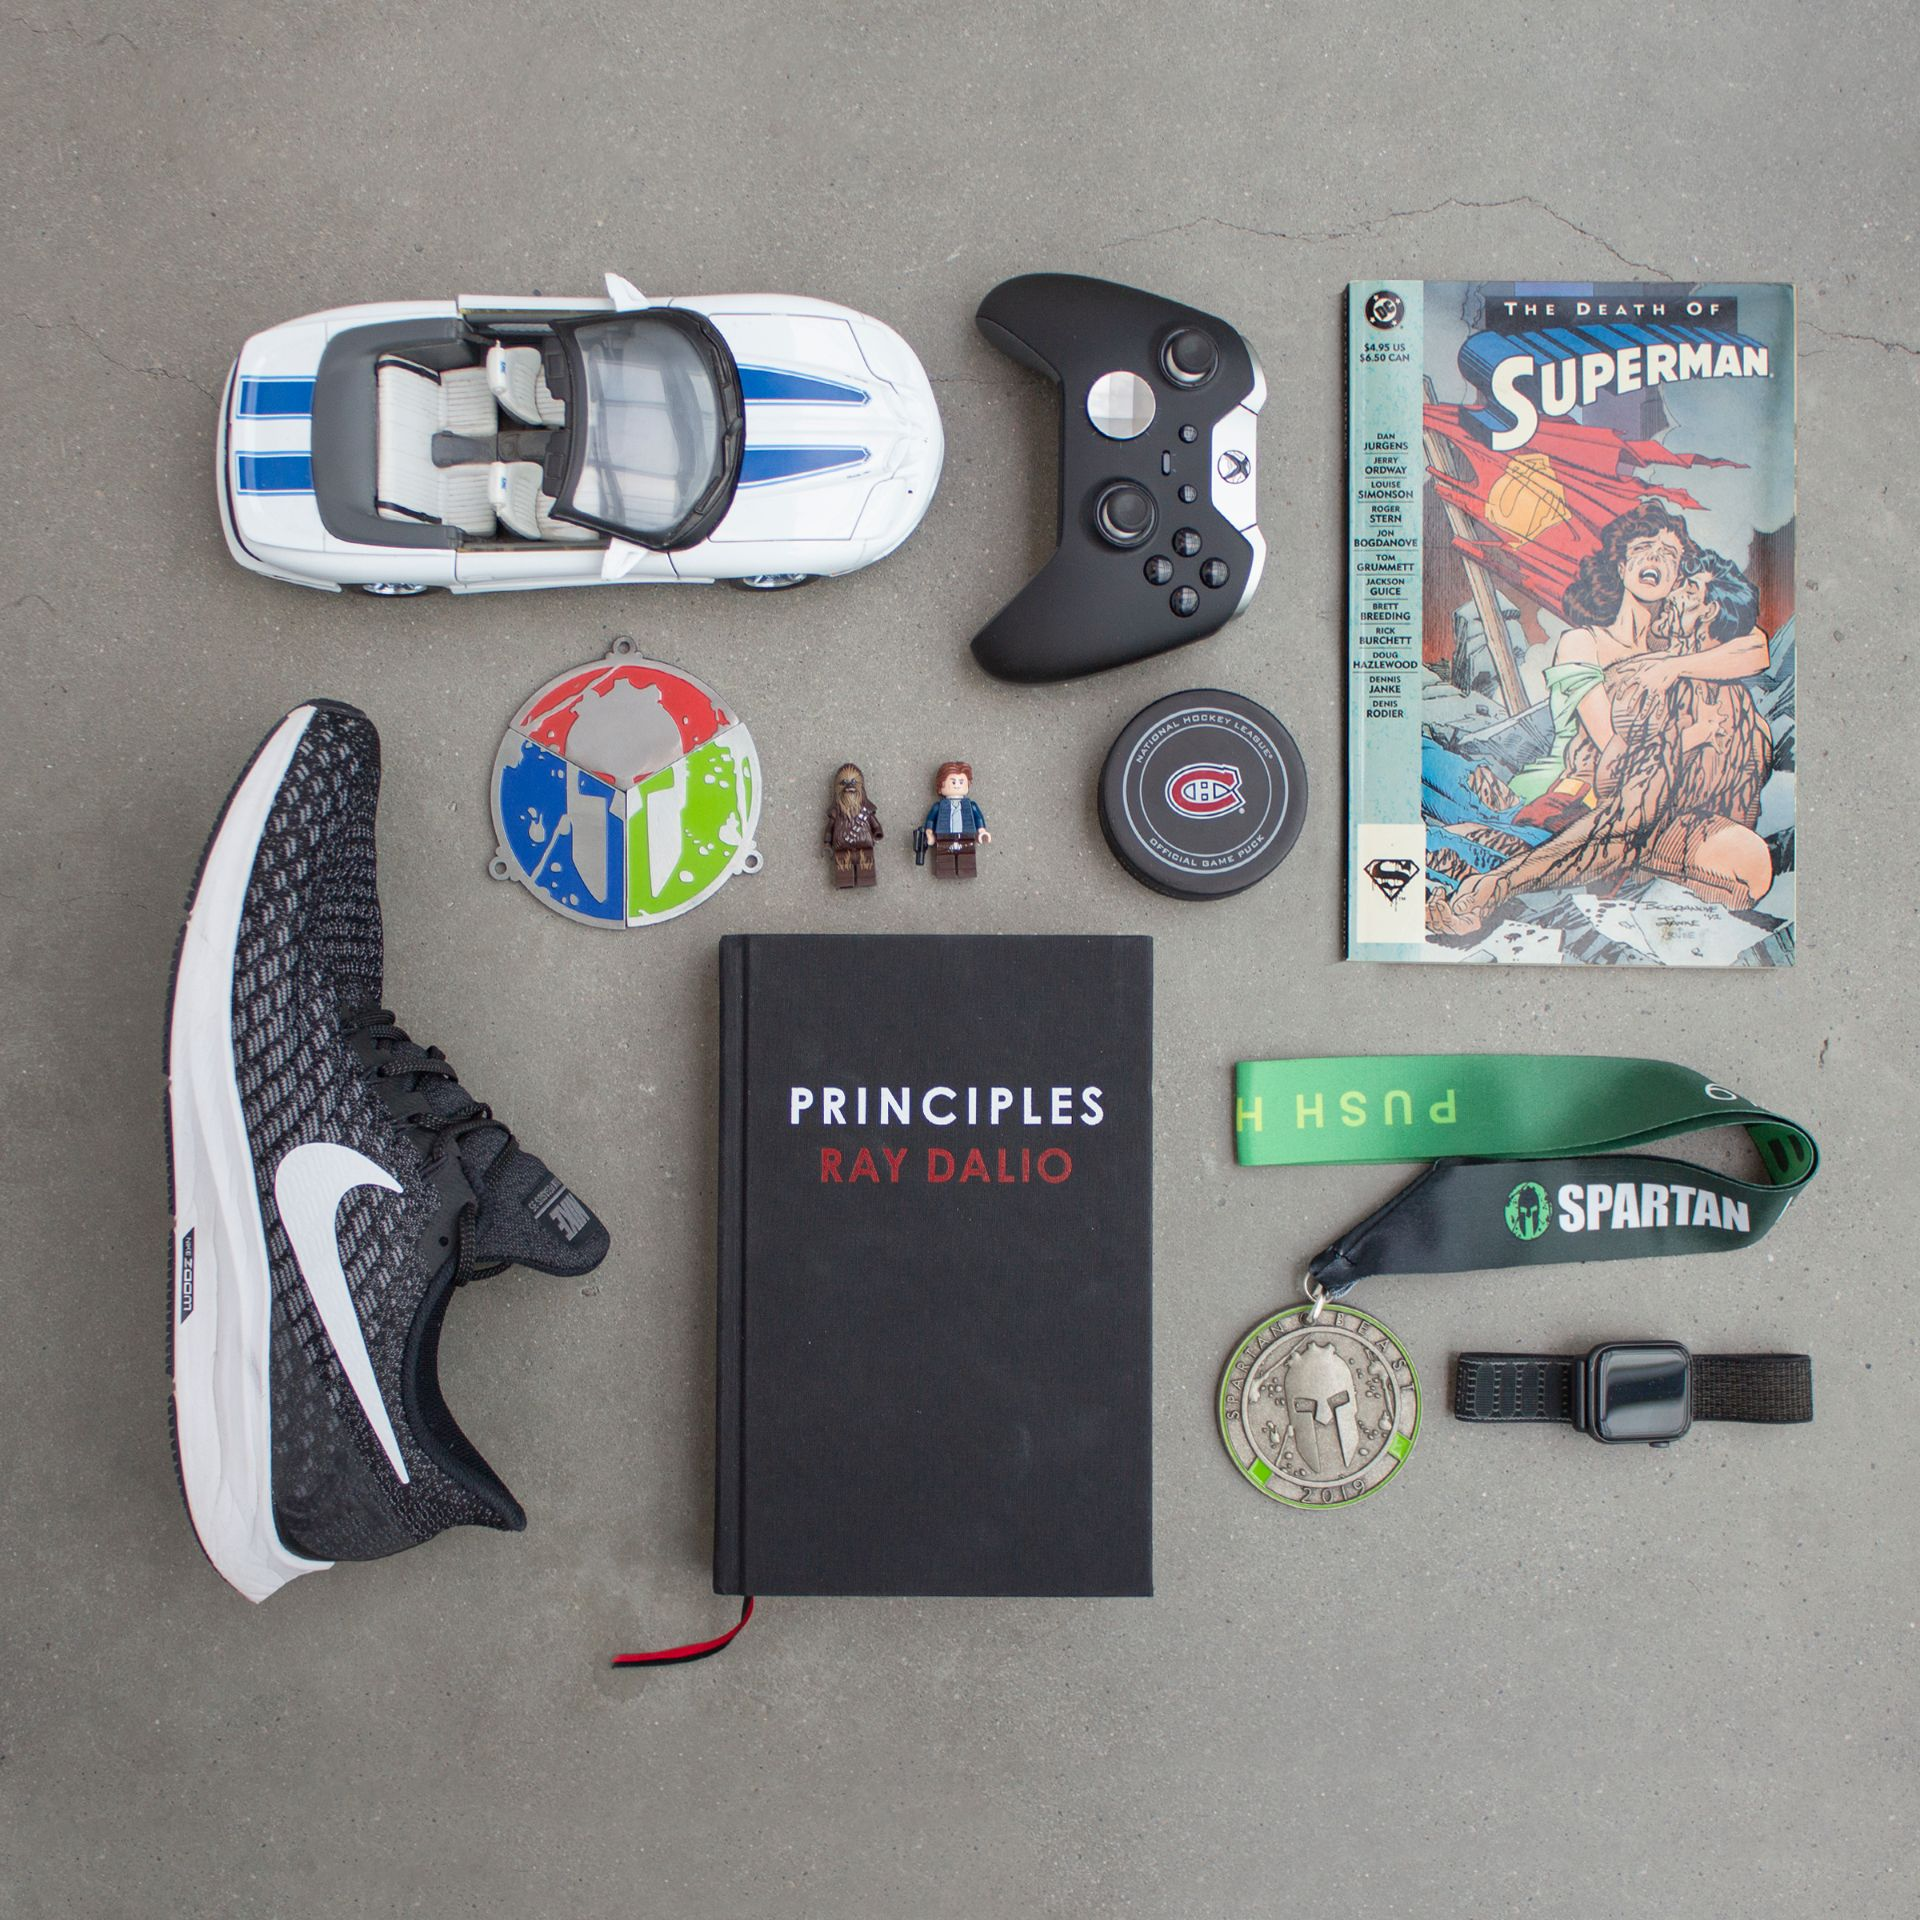 Chris Stephens' flat lay of items representing his personality.